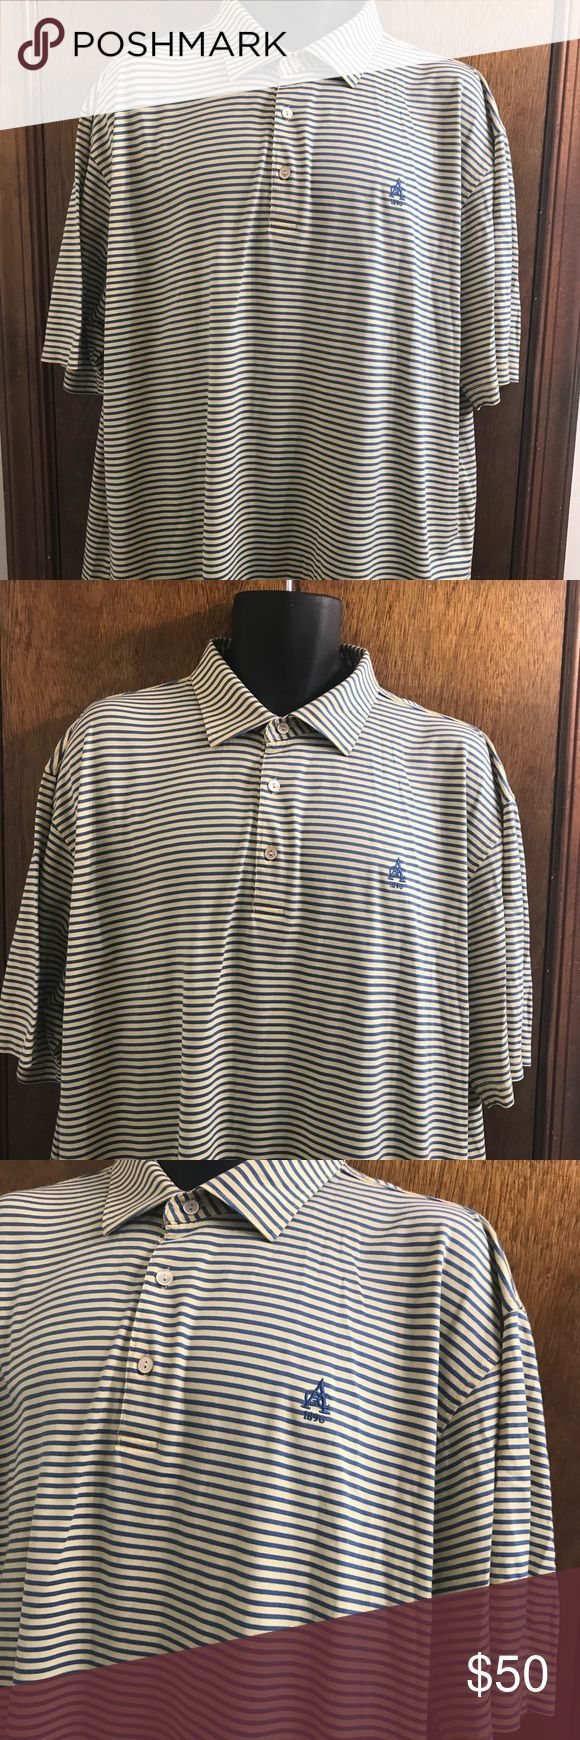 """Peter Millar 1896 Stripe Golf Polo Shirt Size XL Peter Millar 1896 Yellow Blue Stripe Golf Polo Shirt Size XL Extra Large 100% cotton Pristine condition  Pit to pit 25"""" Length 32"""" Peter Millar Shirts Polos"""